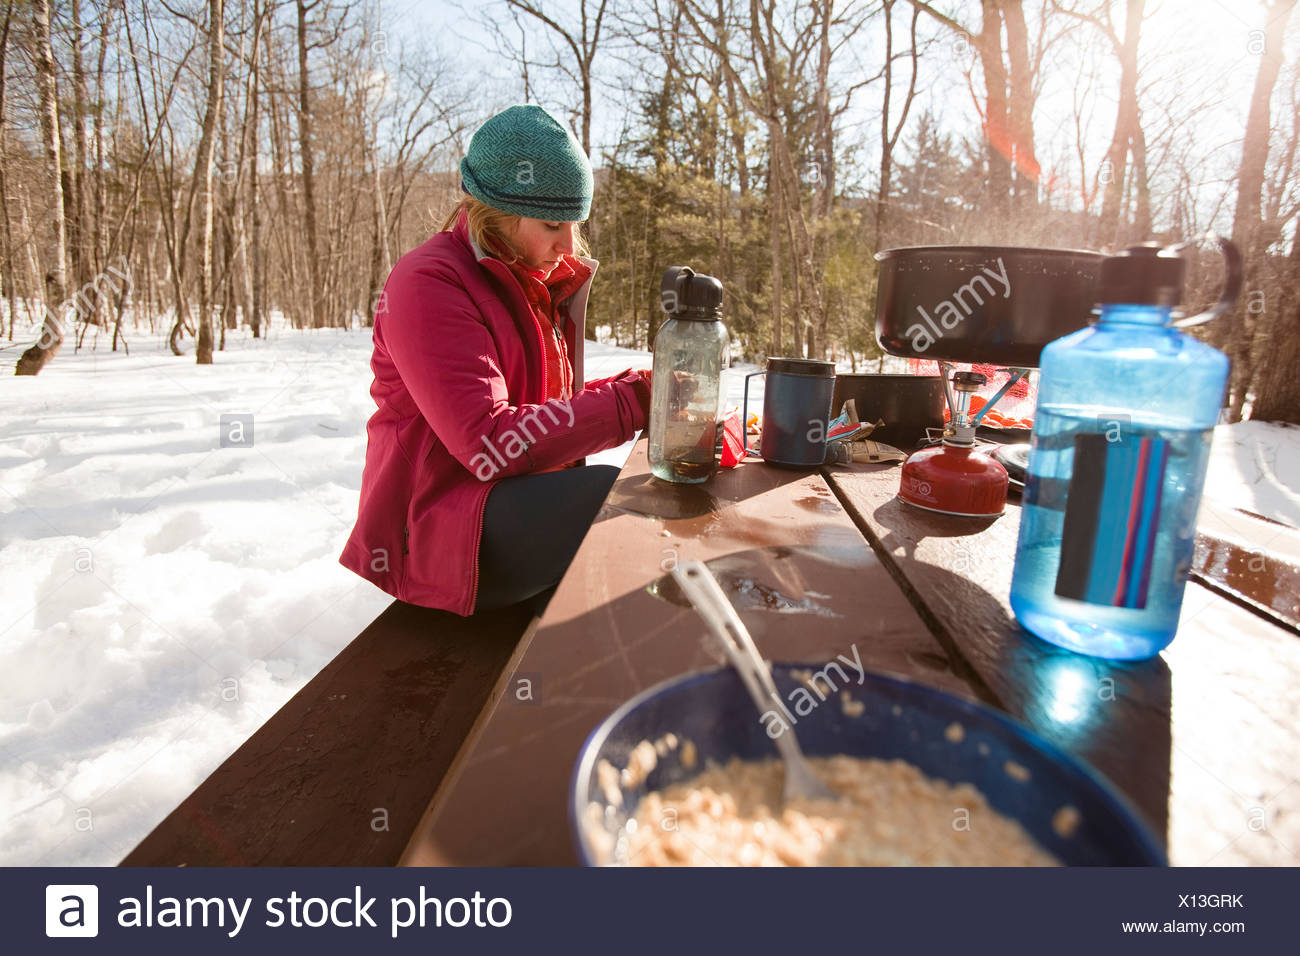 A woman eats breakfast while camping off the Kangamangus Highway near Conway, New Hampshire. - Stock Image